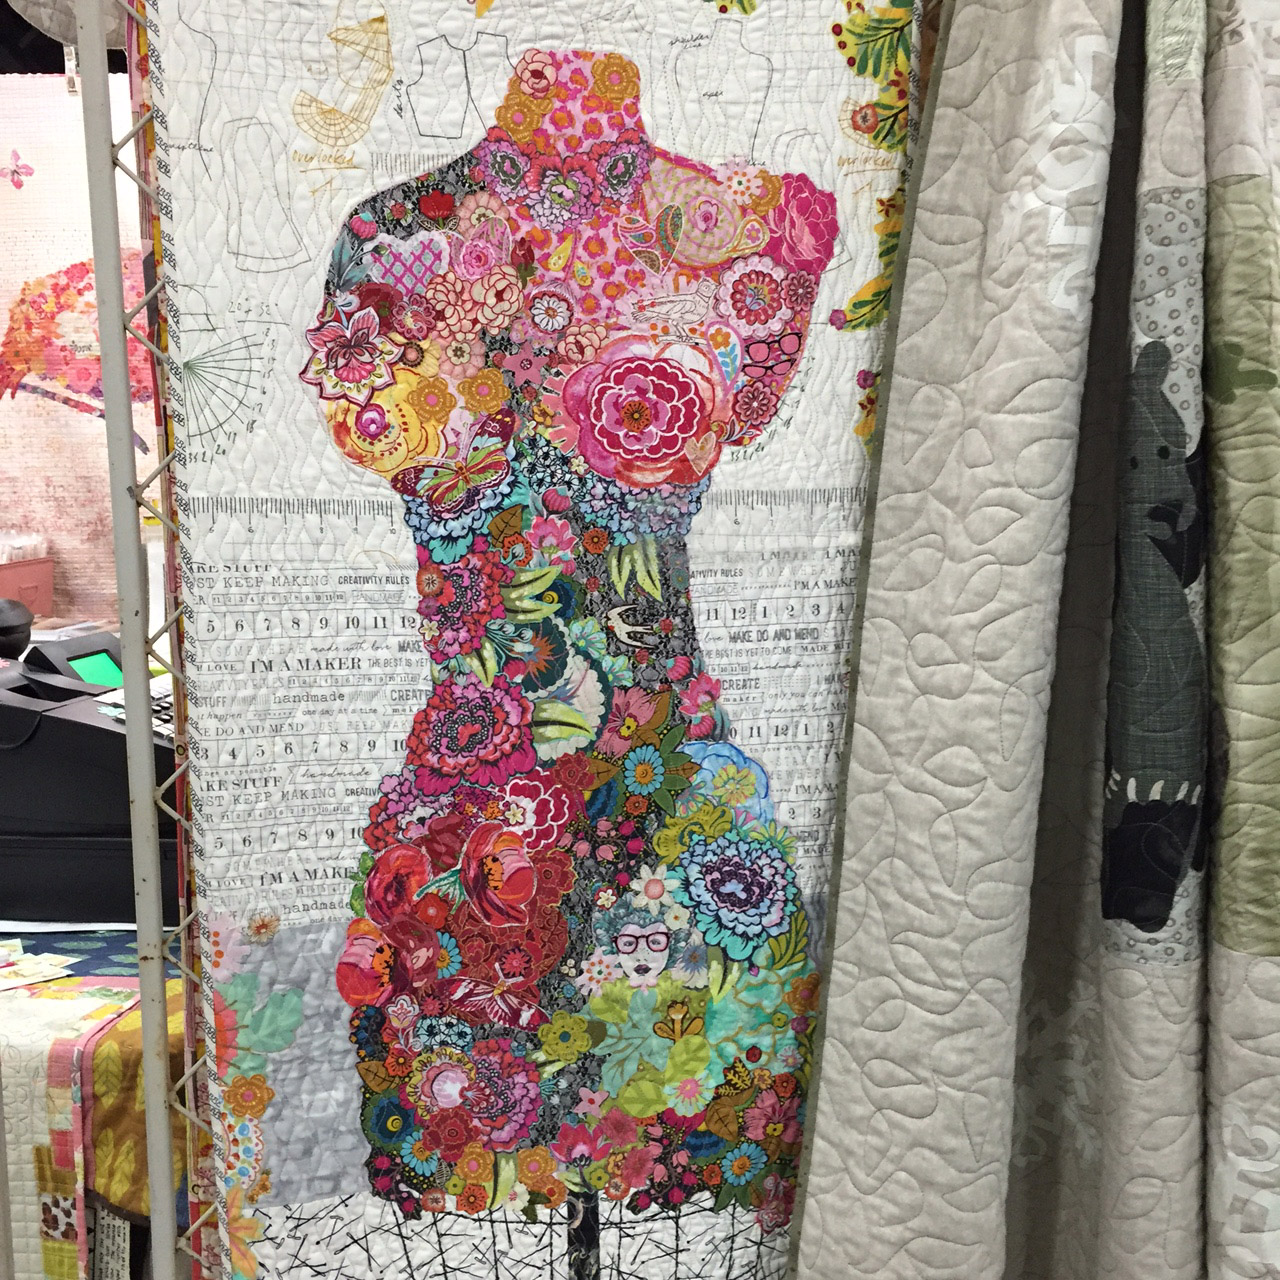 Sew Stitch Expo 2016 Day 3 Looks